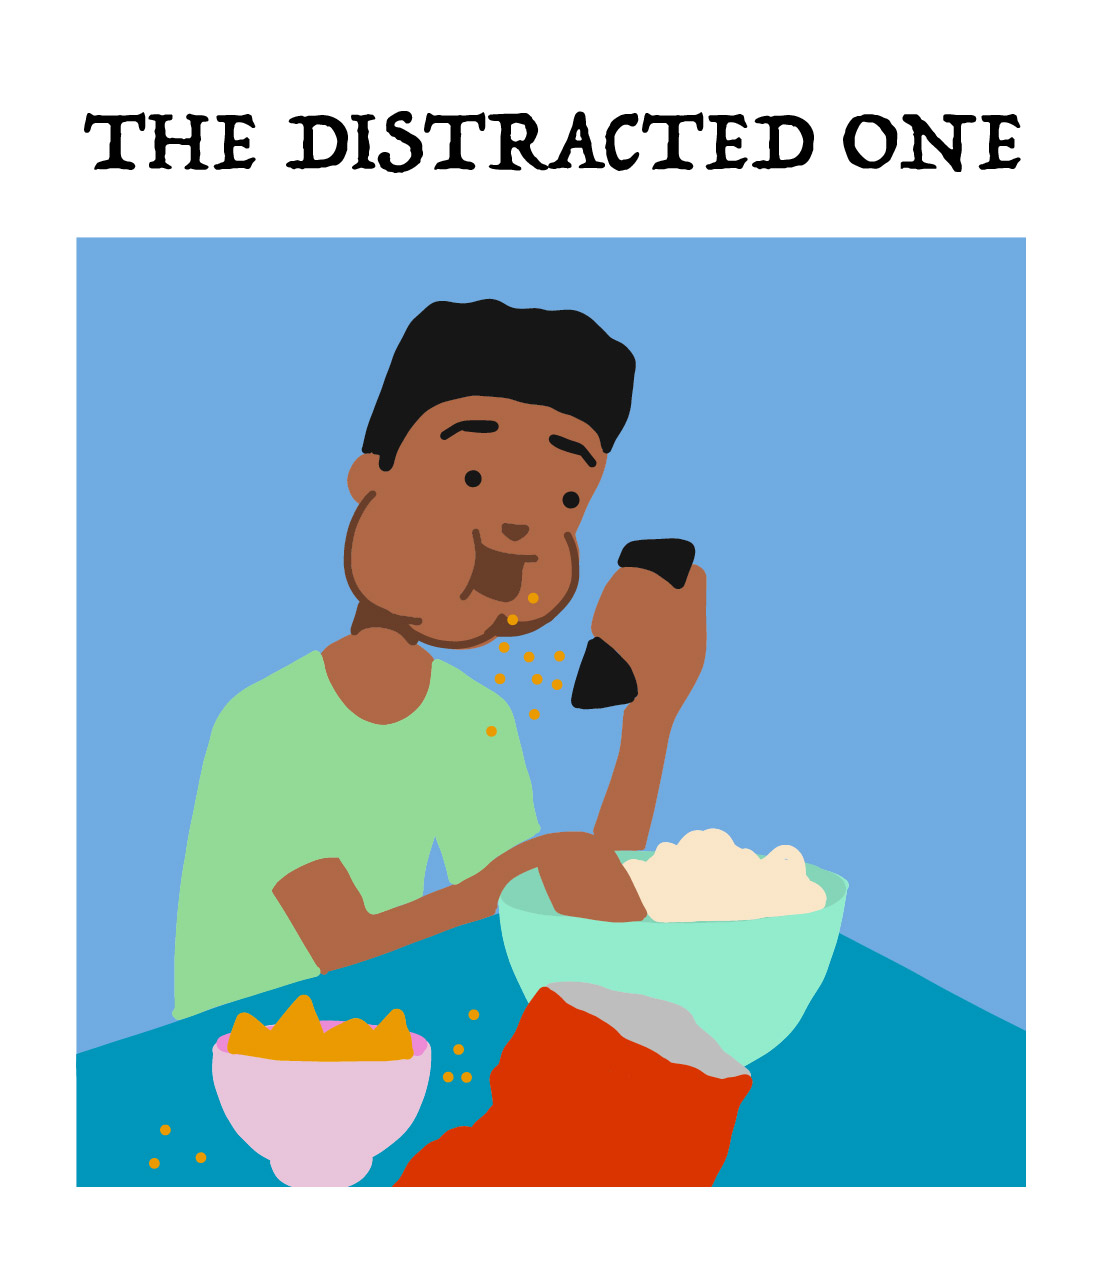 the distracted one, type 7 of the board game player types